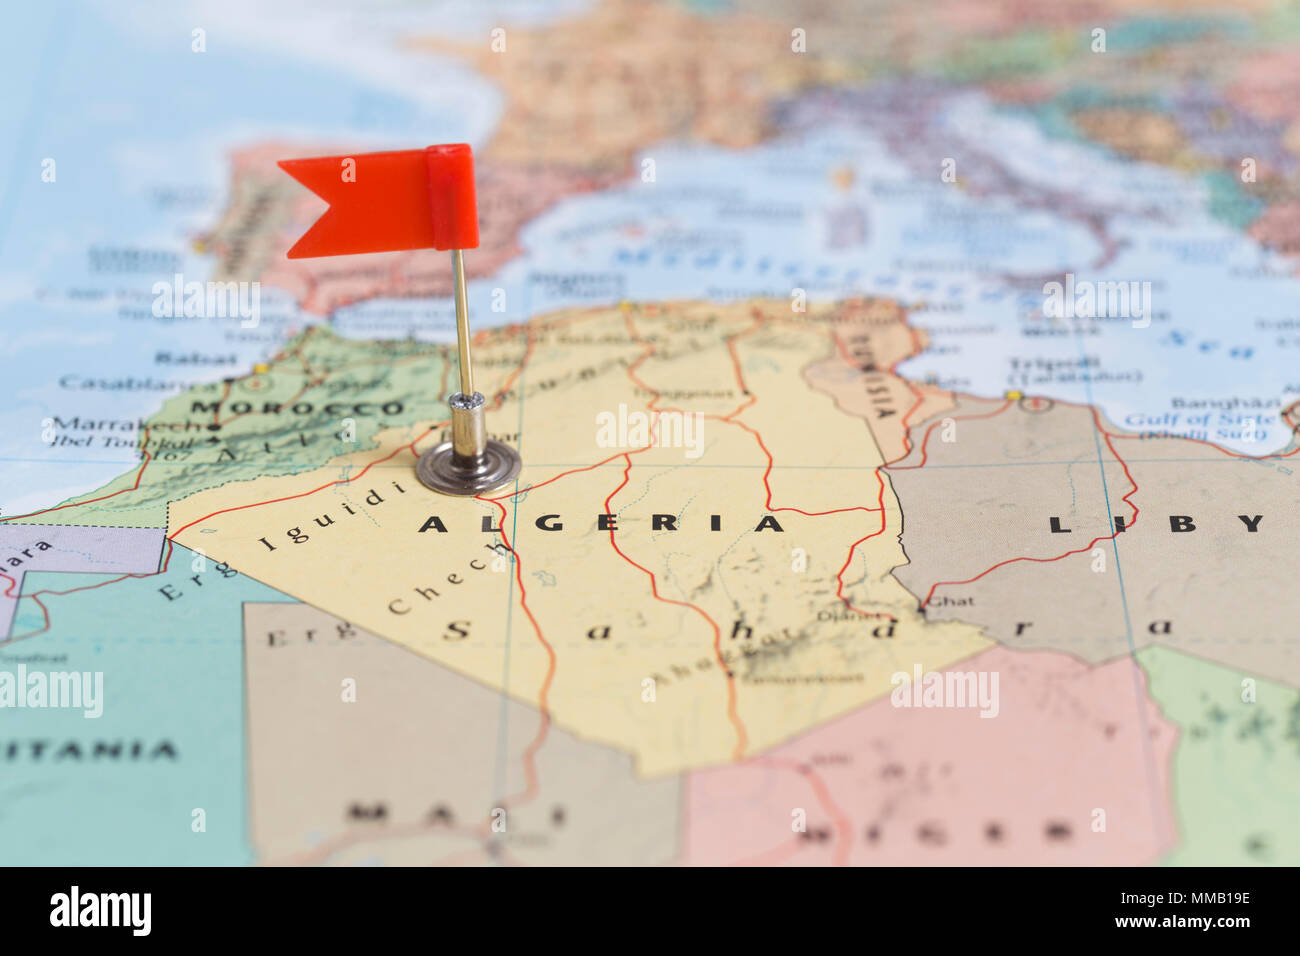 Algeria Country Map Stock Photos & Algeria Country Map Stock Images ...